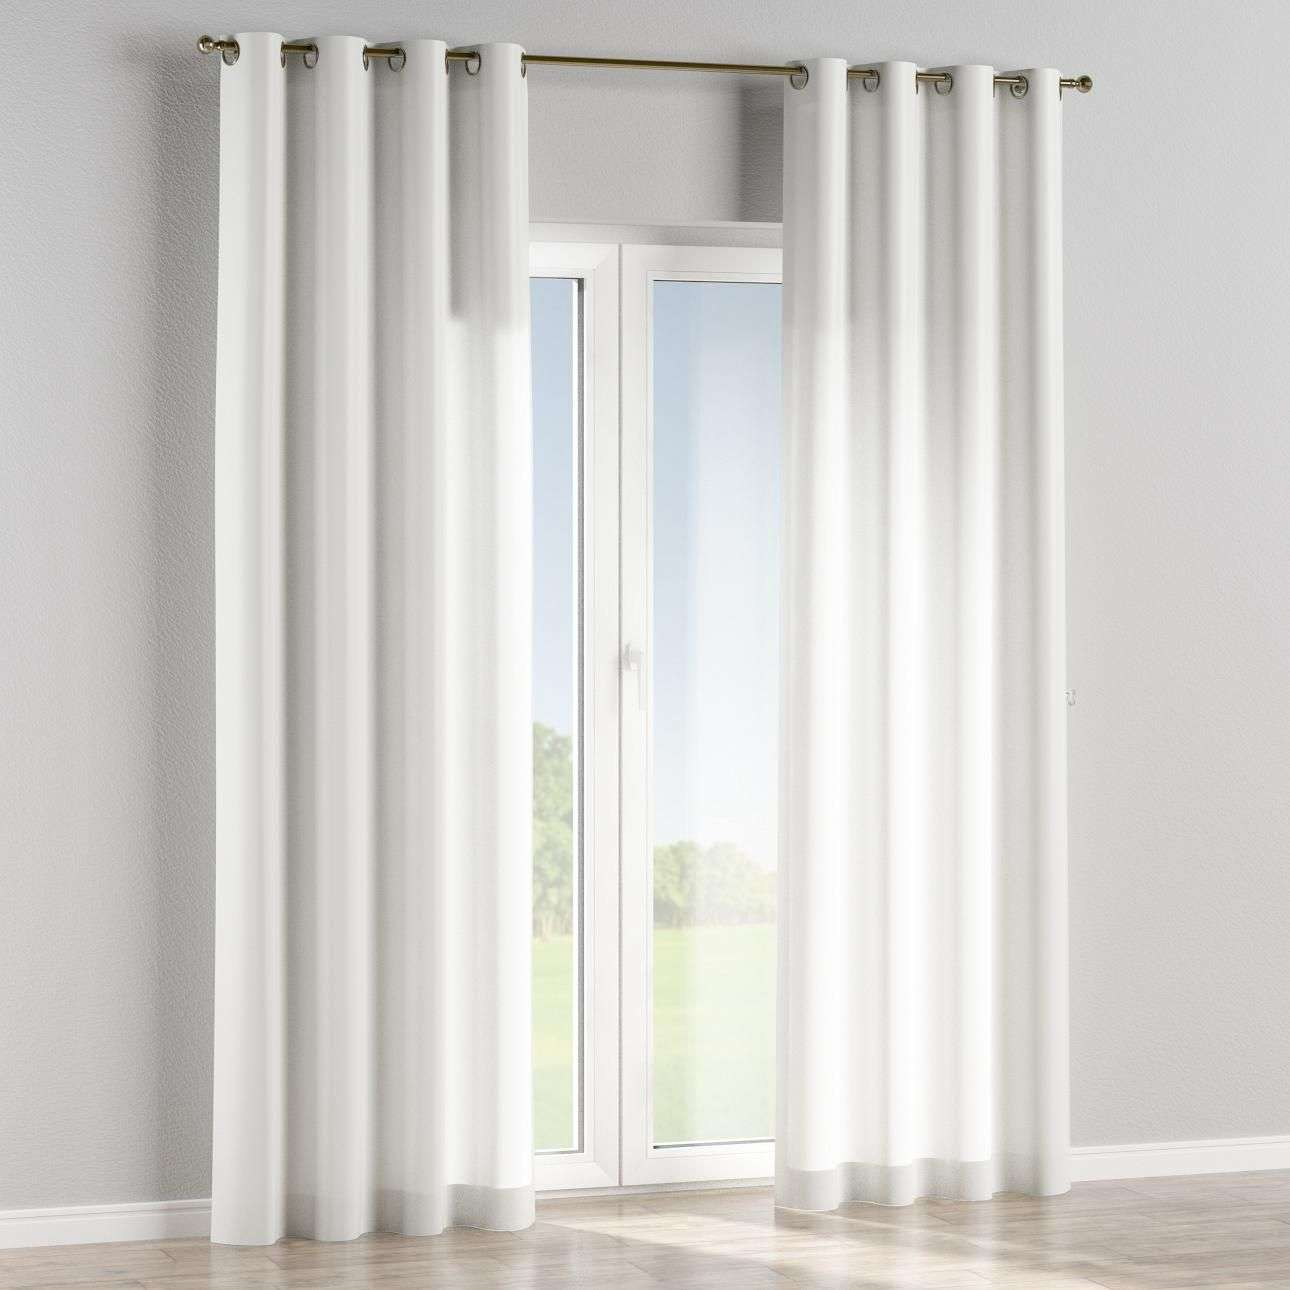 Eyelet lined curtains in collection Mirella, fabric: 141-12